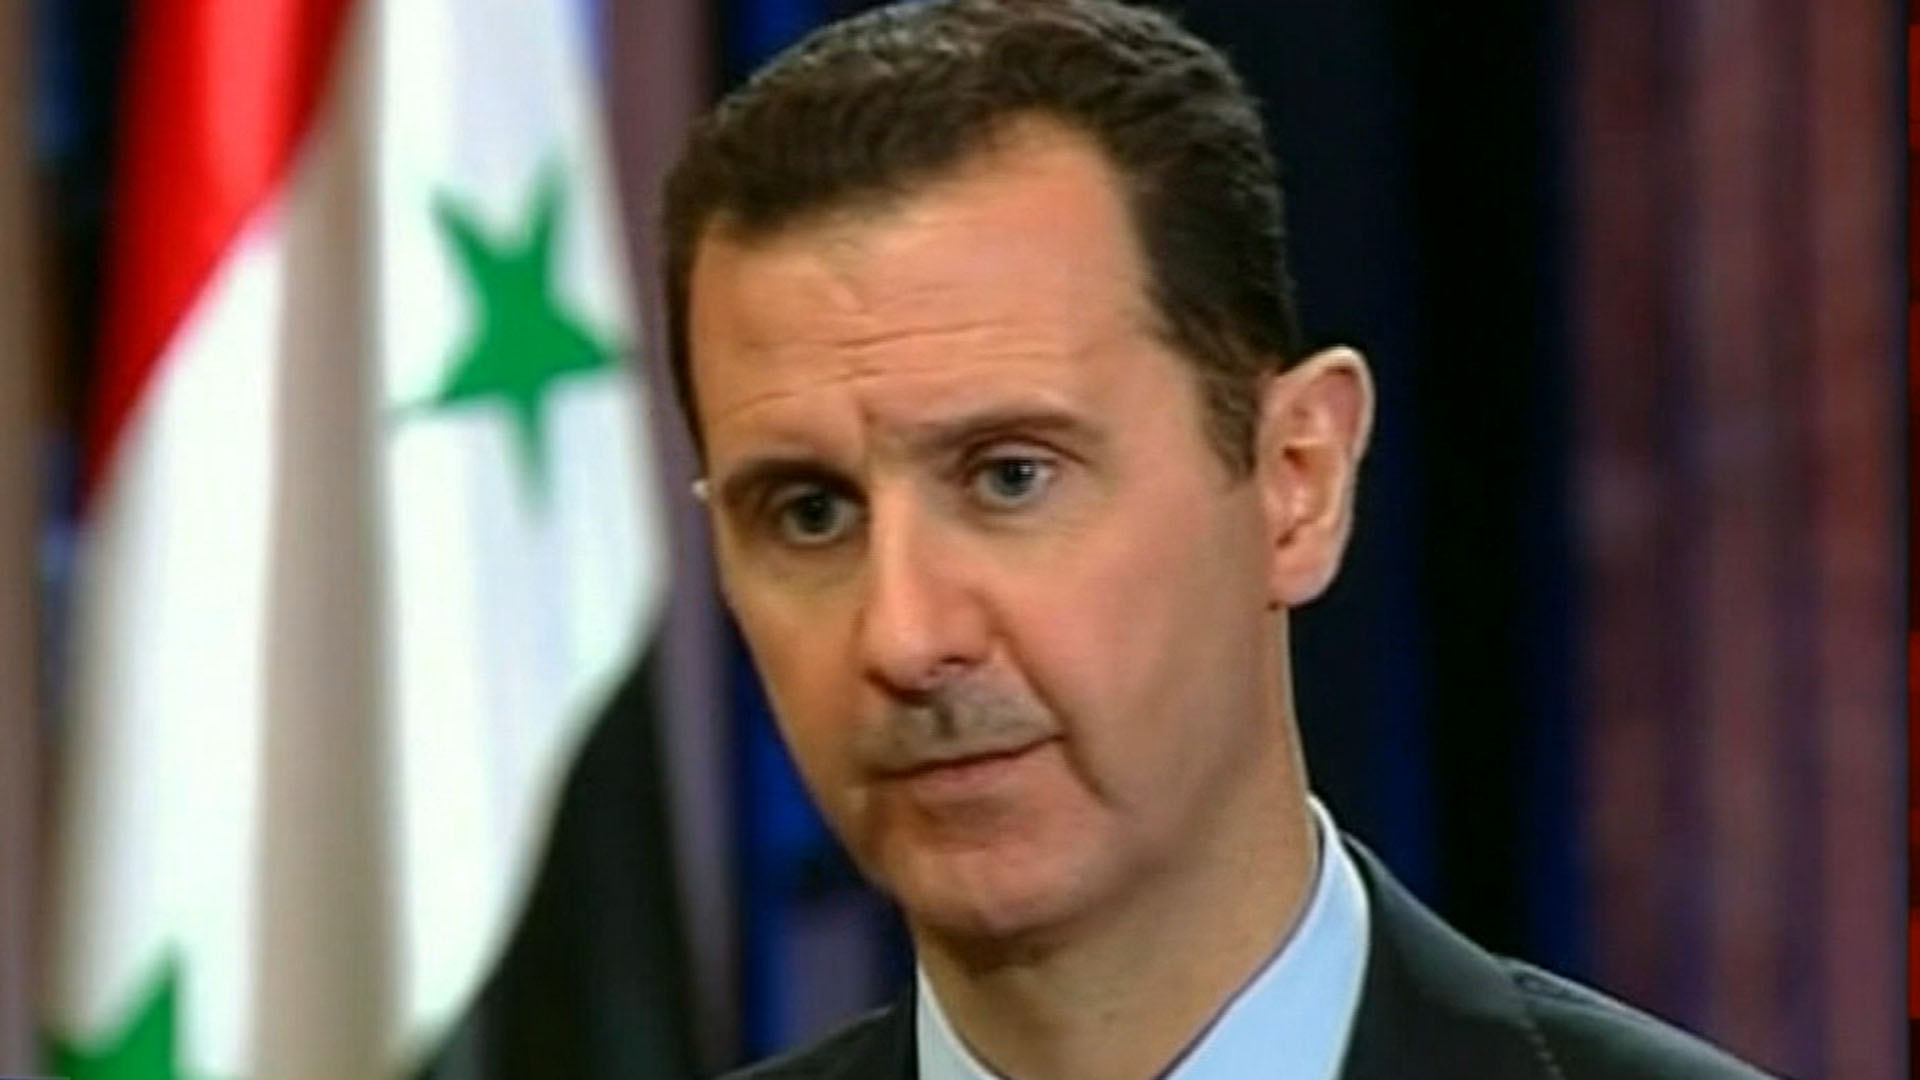 'Shameful' Fox News Assad interview